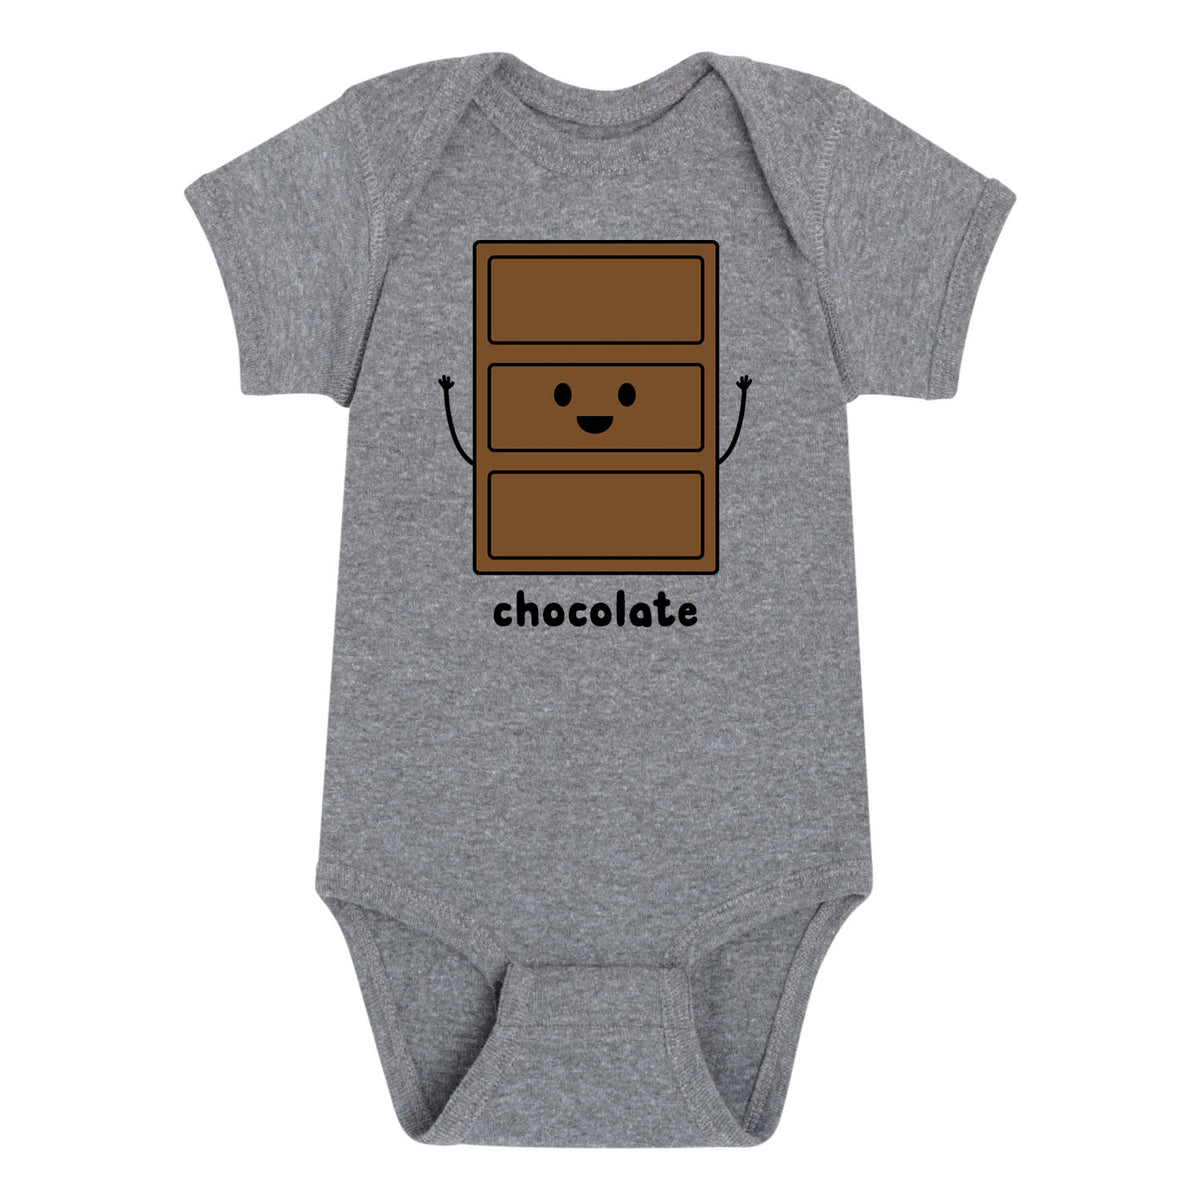 S'mores Chocolate - Infant One Piece